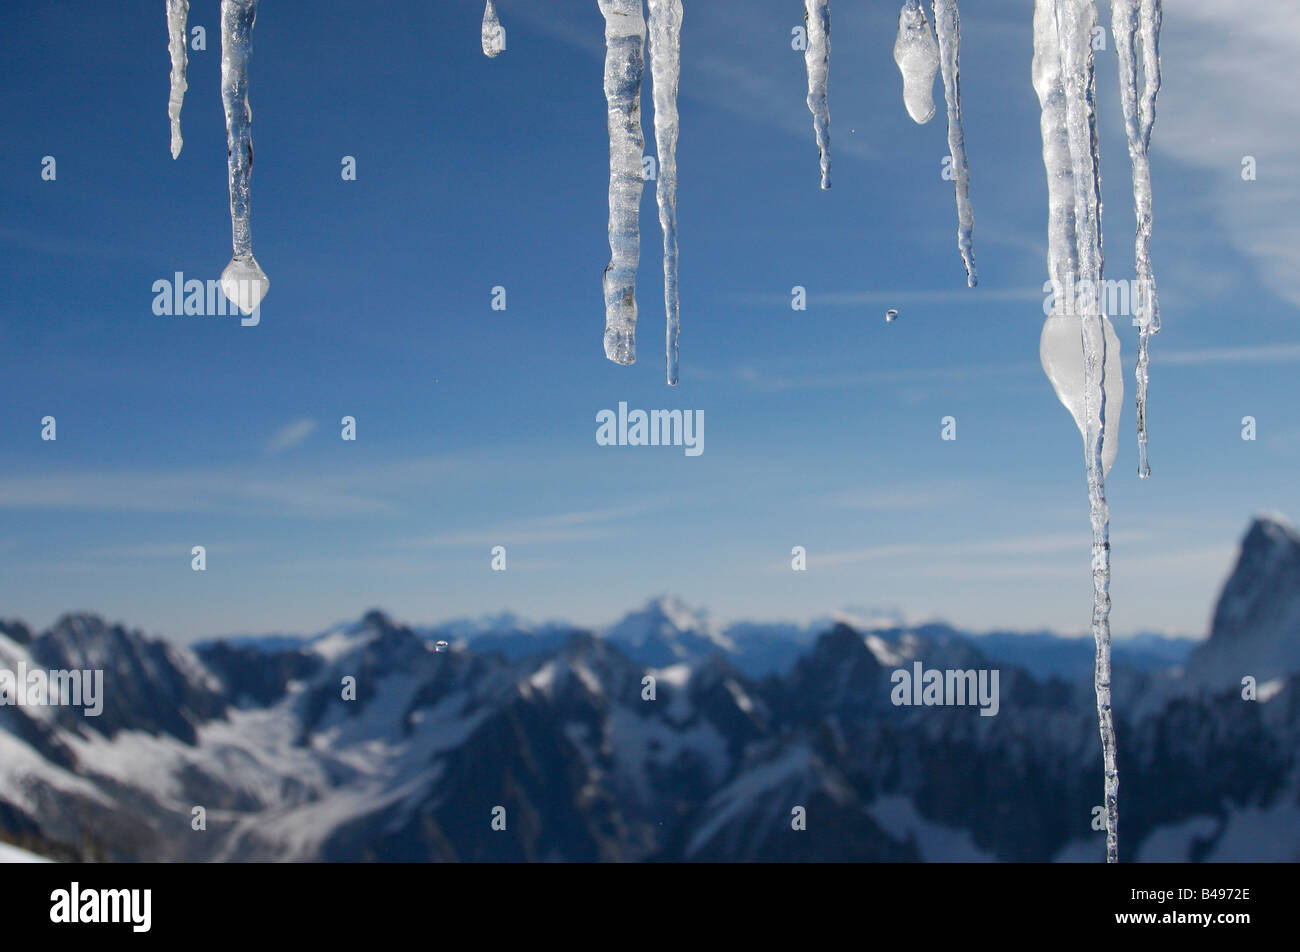 Study of icicles at the Aiguille du Midi cable car station, Chamonix, French Alps. - Stock Image